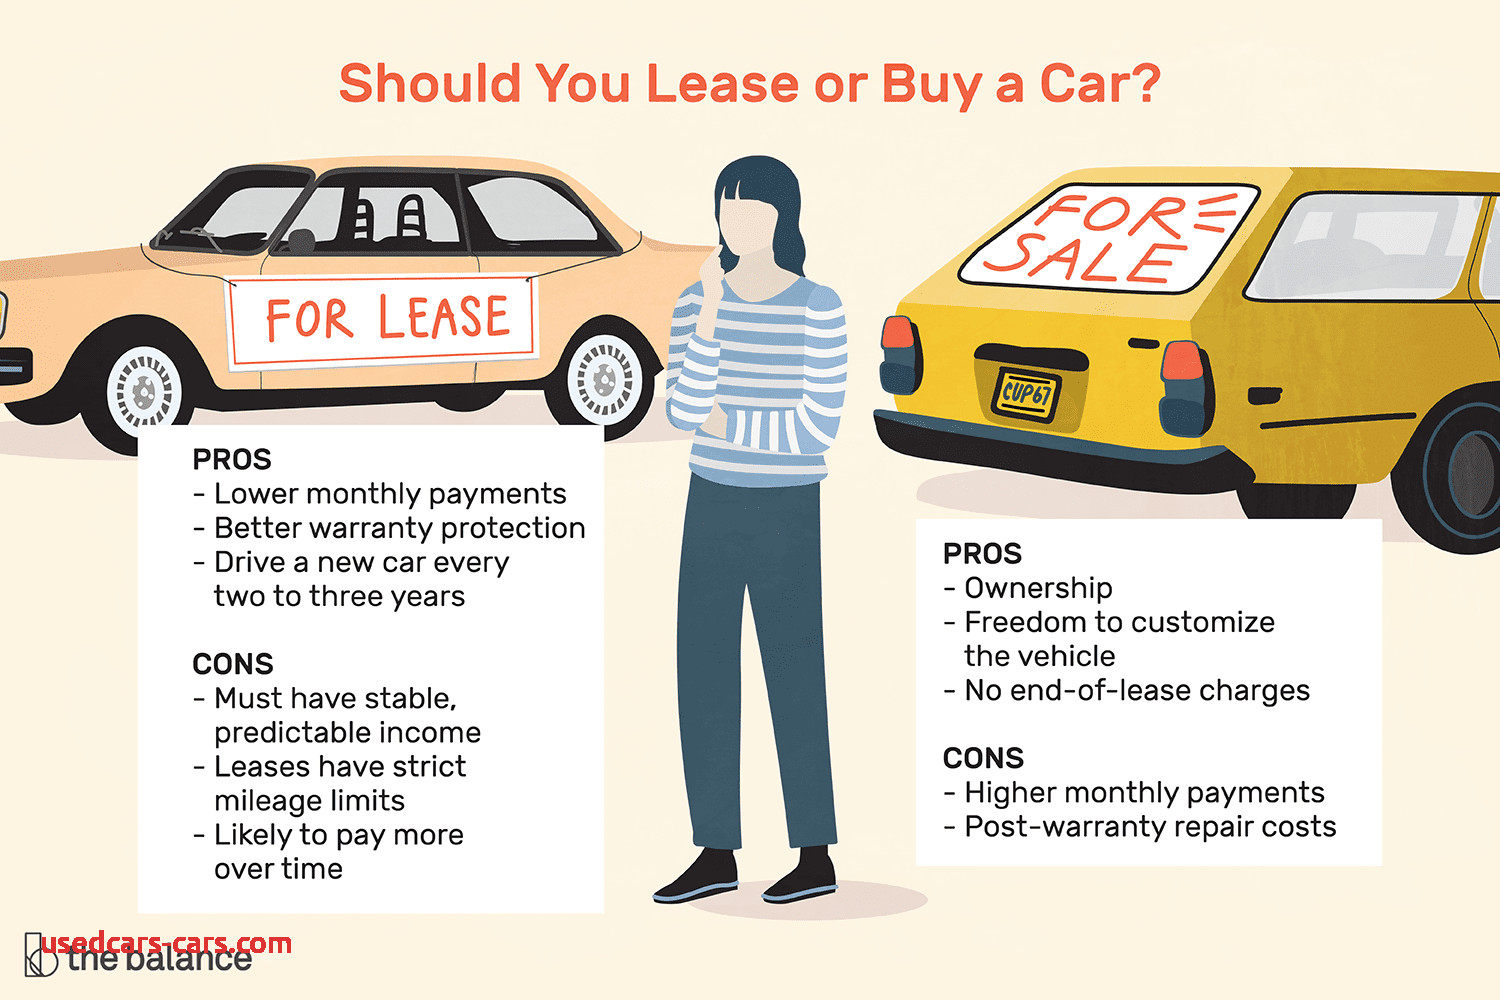 Buy Vs Lease Car Fresh Pros and Cons Of Leasing Vs Buying A Car